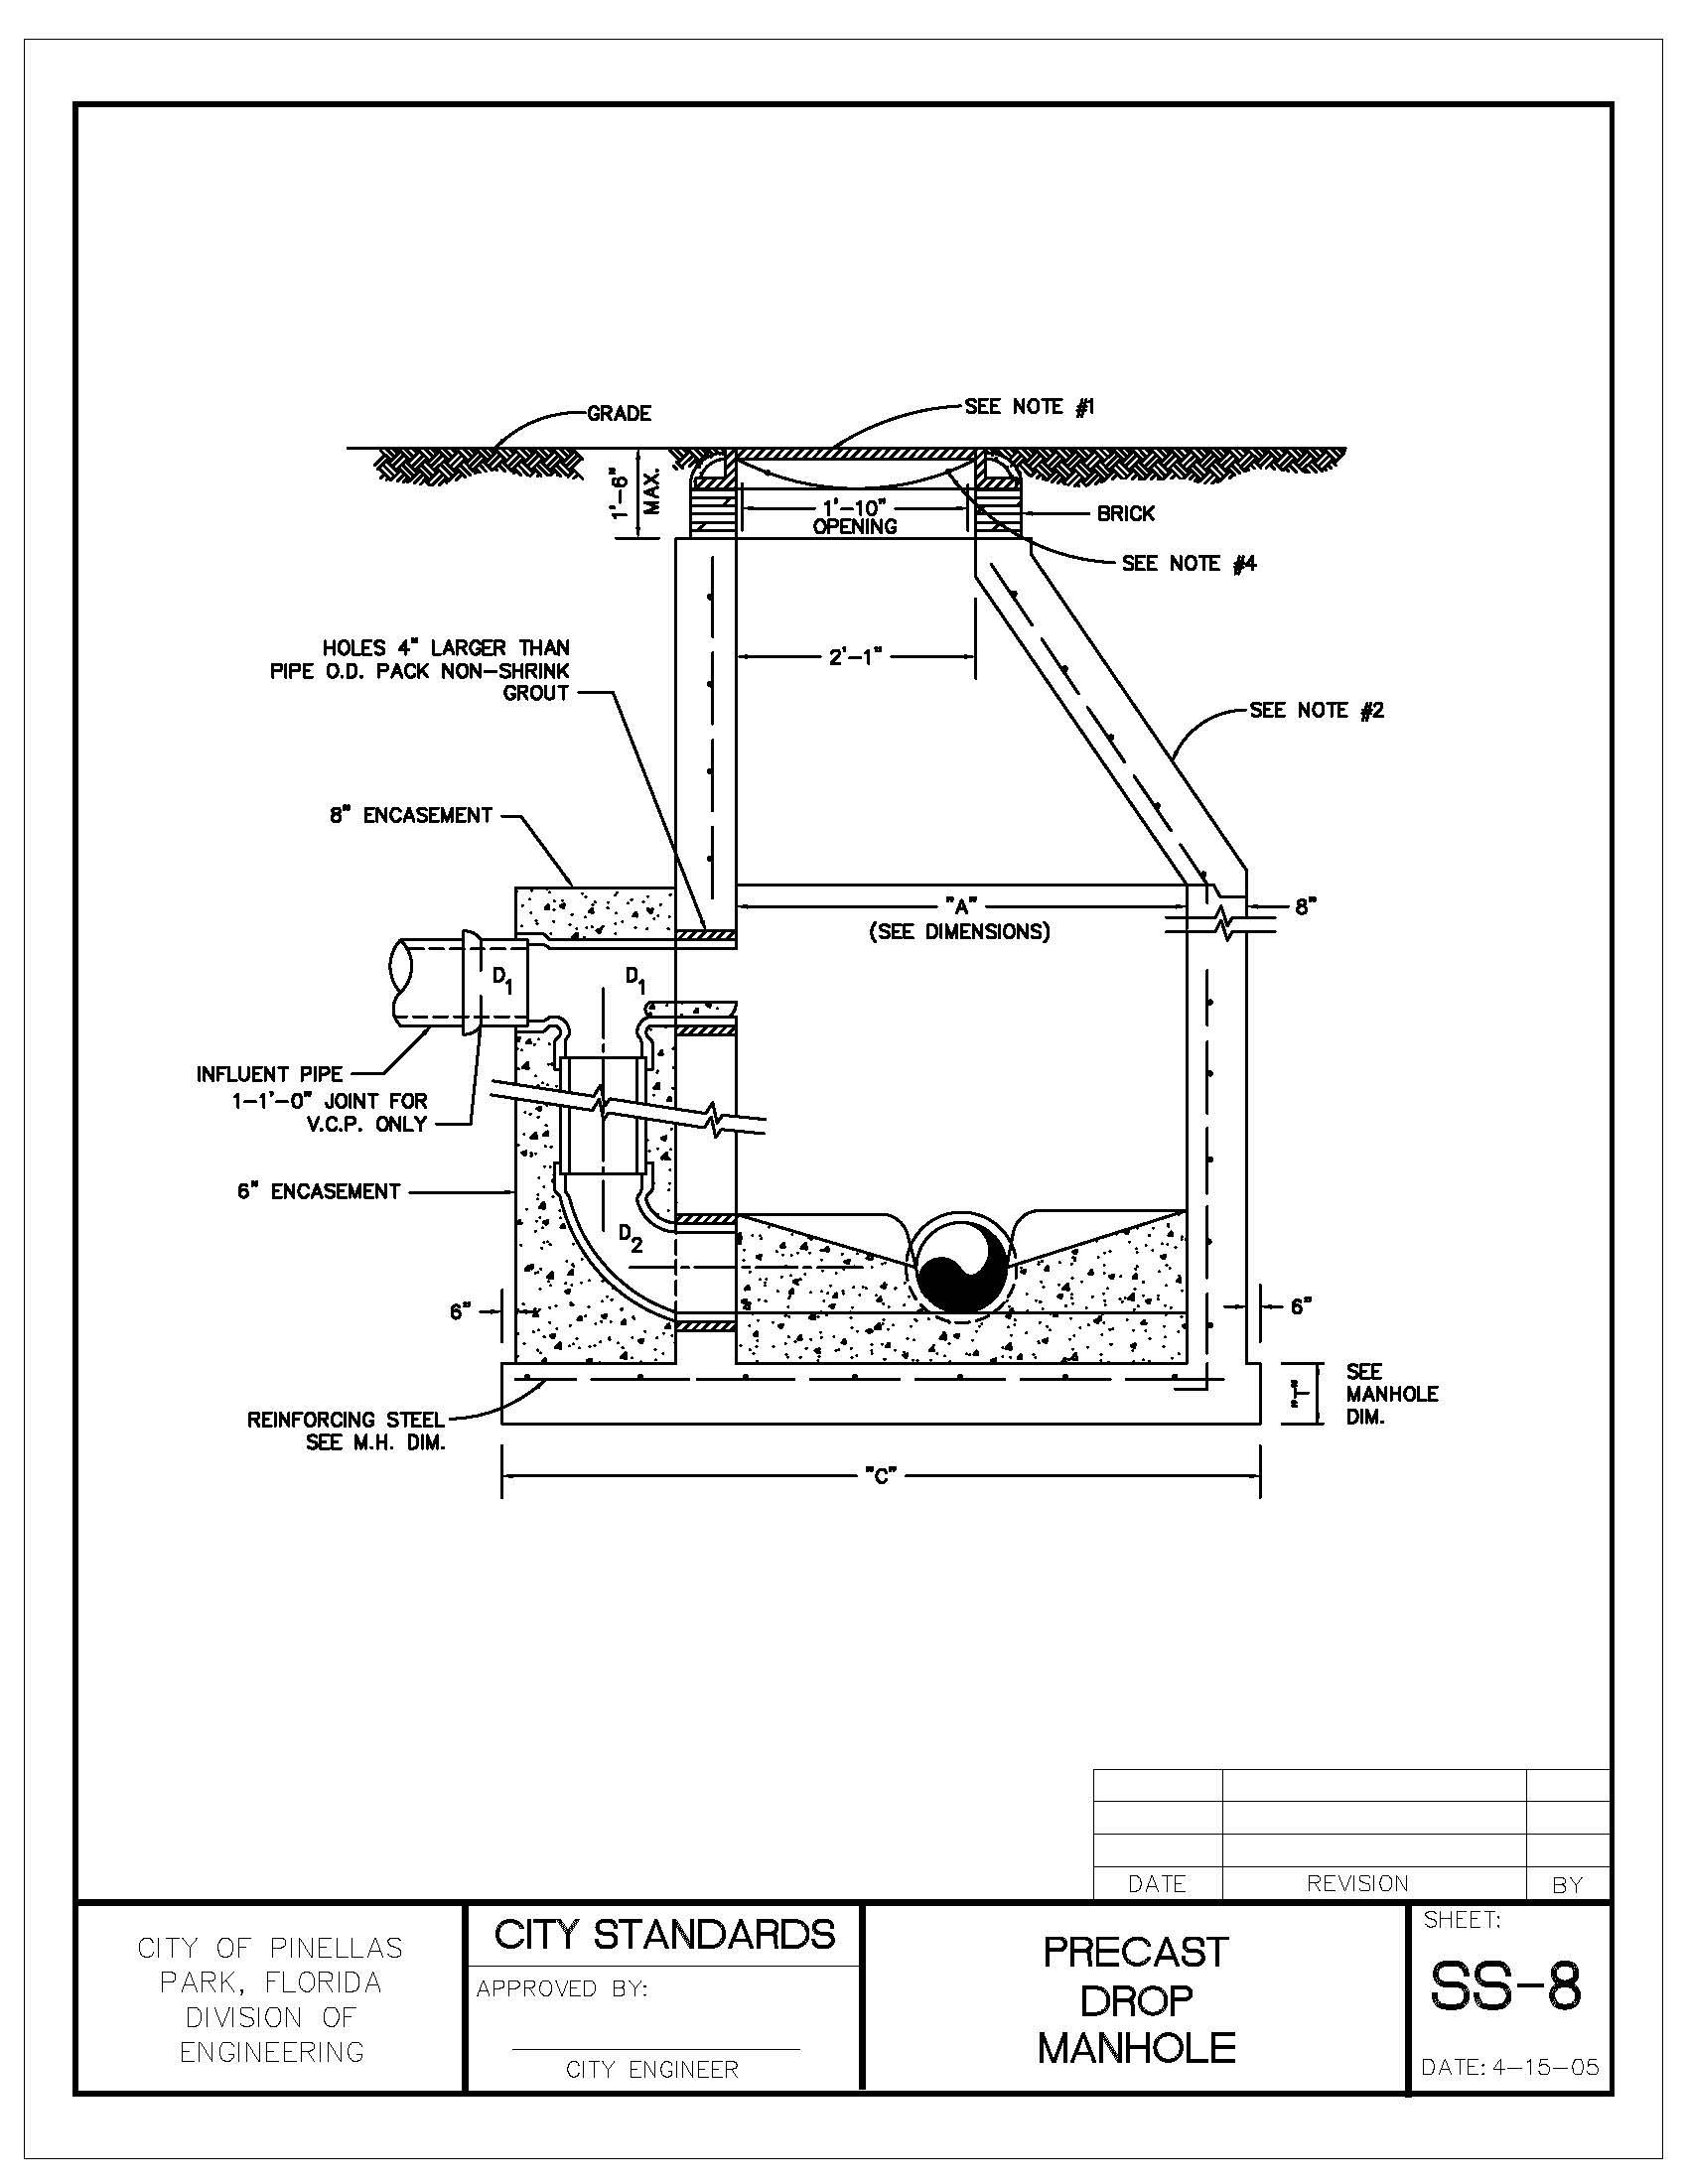 Engineering Manual v5_201908121127291138_Page_072 precast manhole drop